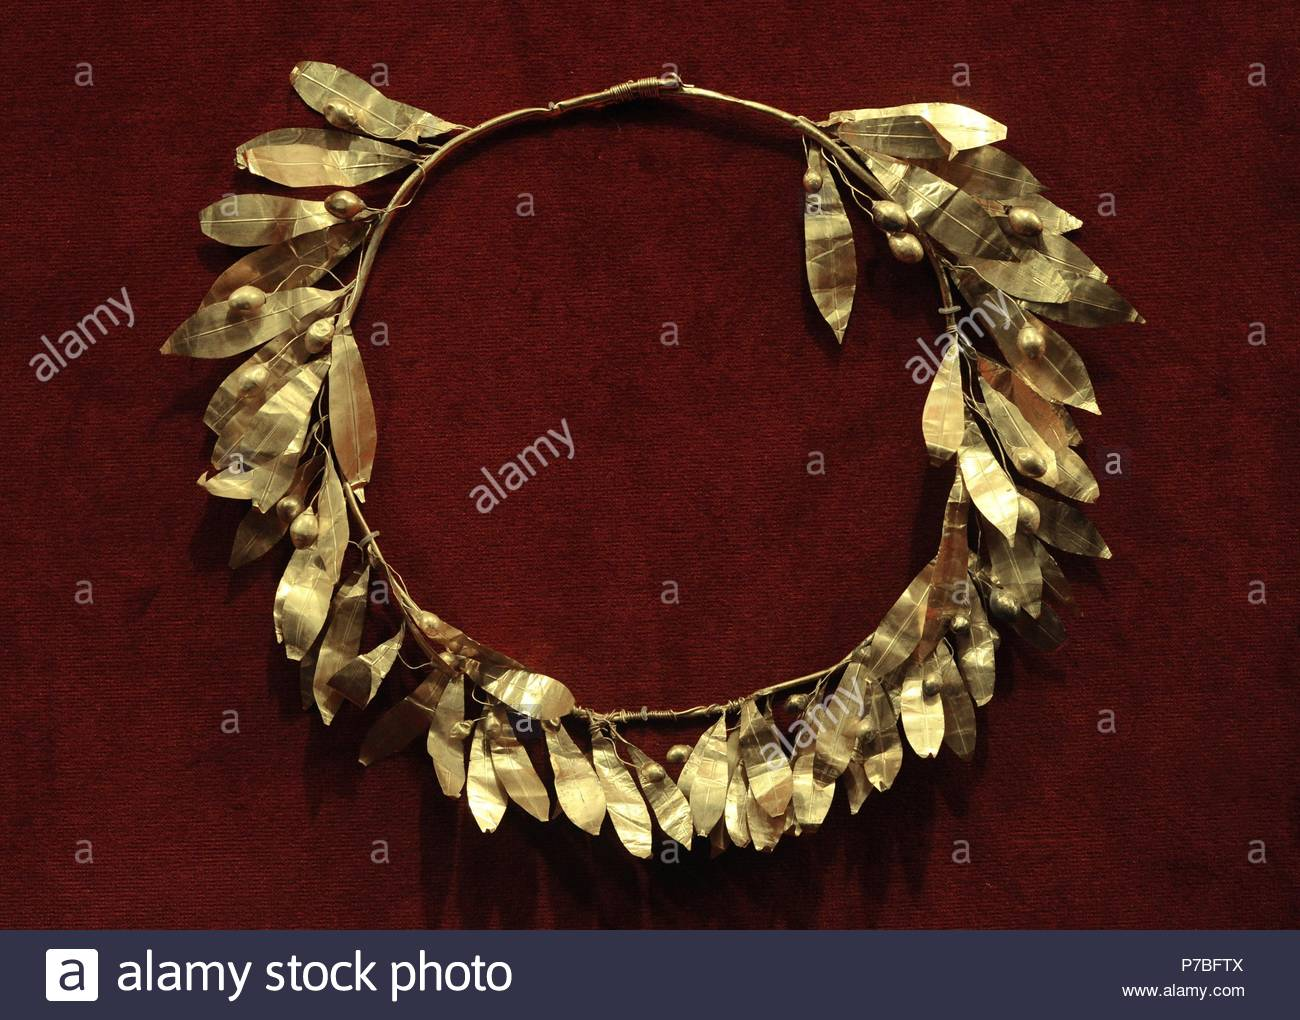 Gold crown of olive leaves. Greece. 300 BC. Museum of Mediterranean and Near Eastern Antiquities. Stockholm. Sweden. - Stock Image